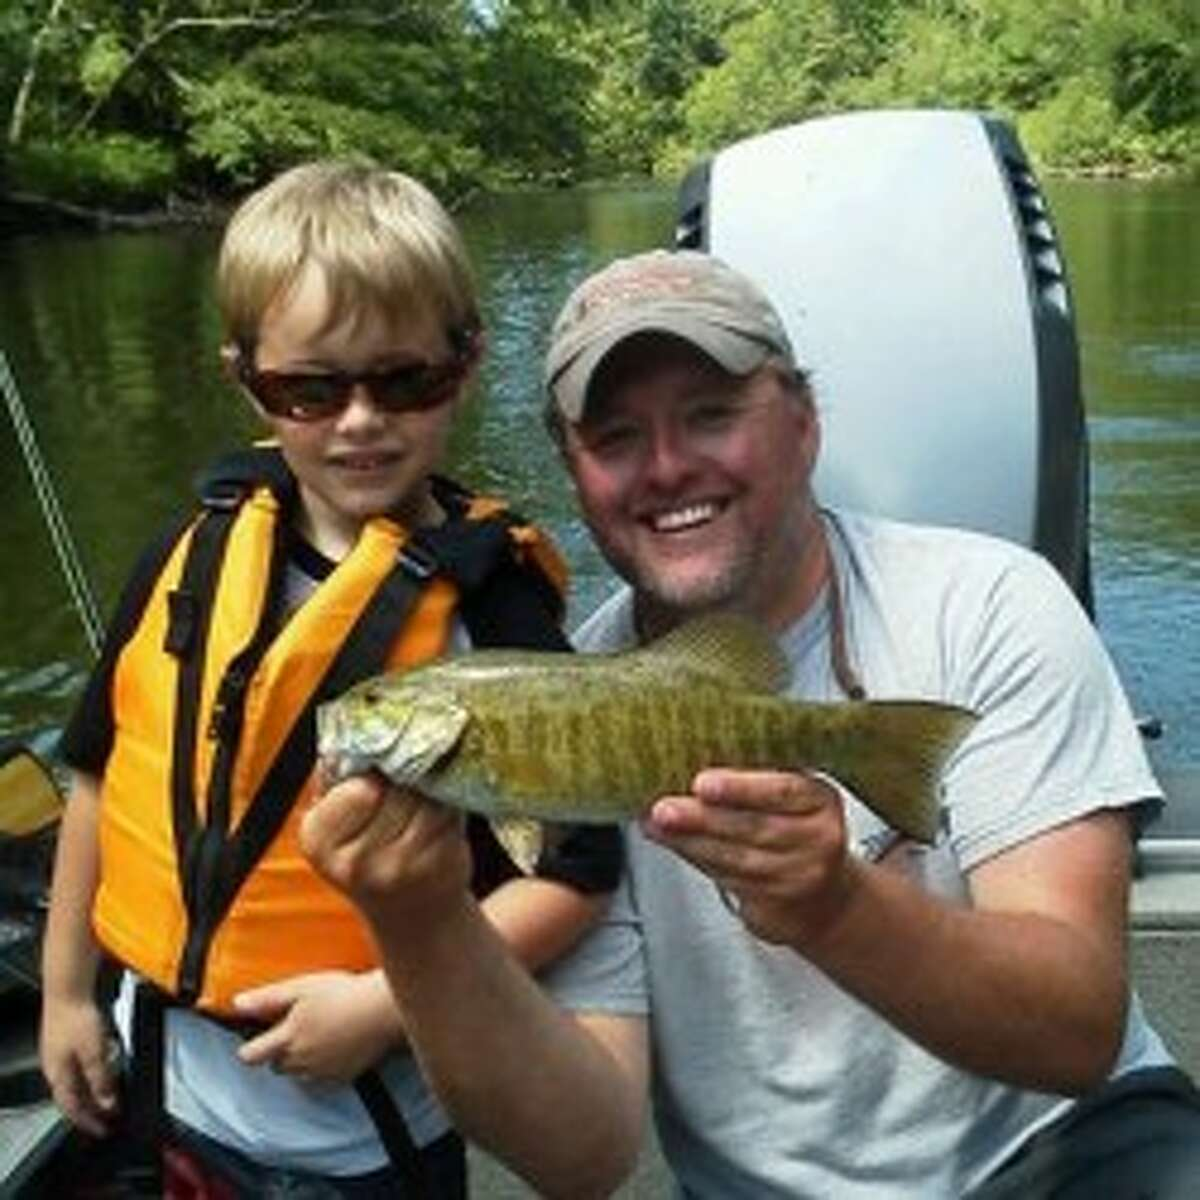 John Gouker and his son A.J. show off a smallmouth bass they caught at the Big Manistee. (Courtesy Photo)